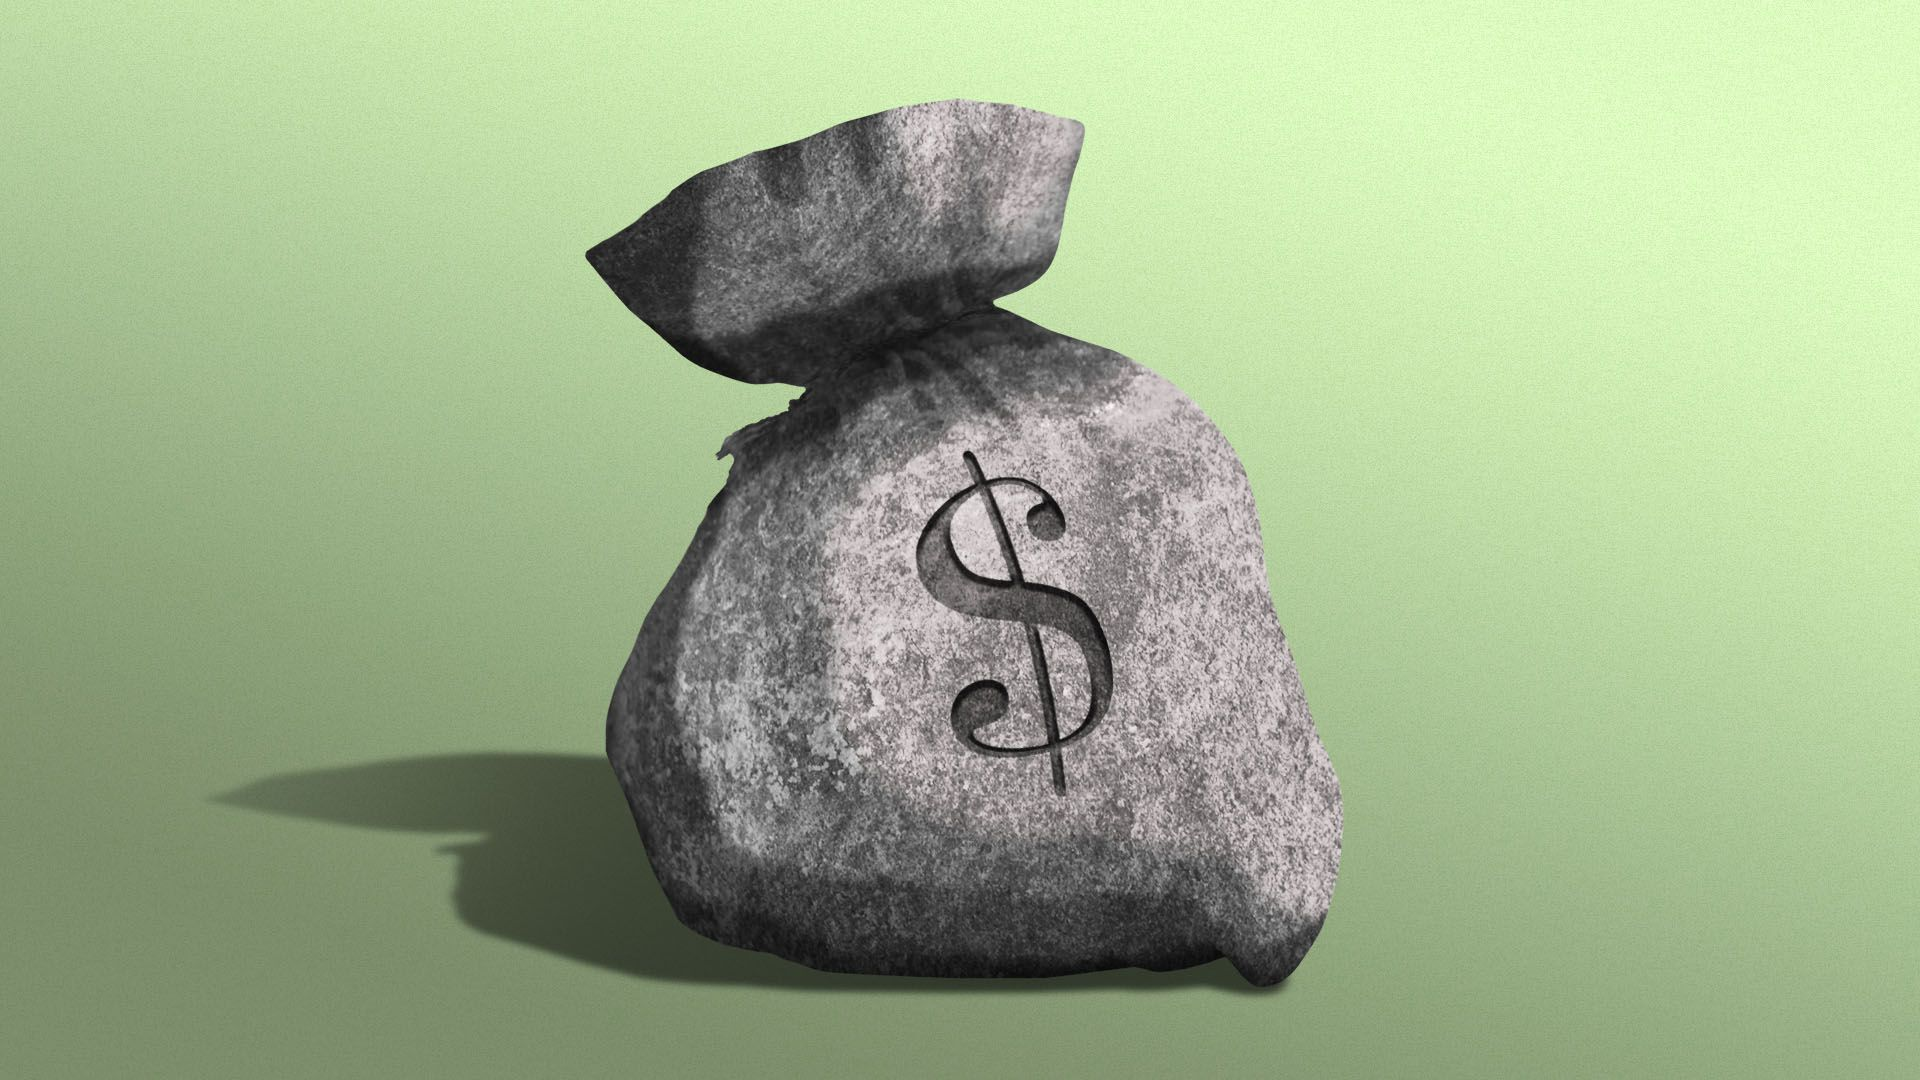 Illustration of a piece of concrete in the shape of a bag of money.